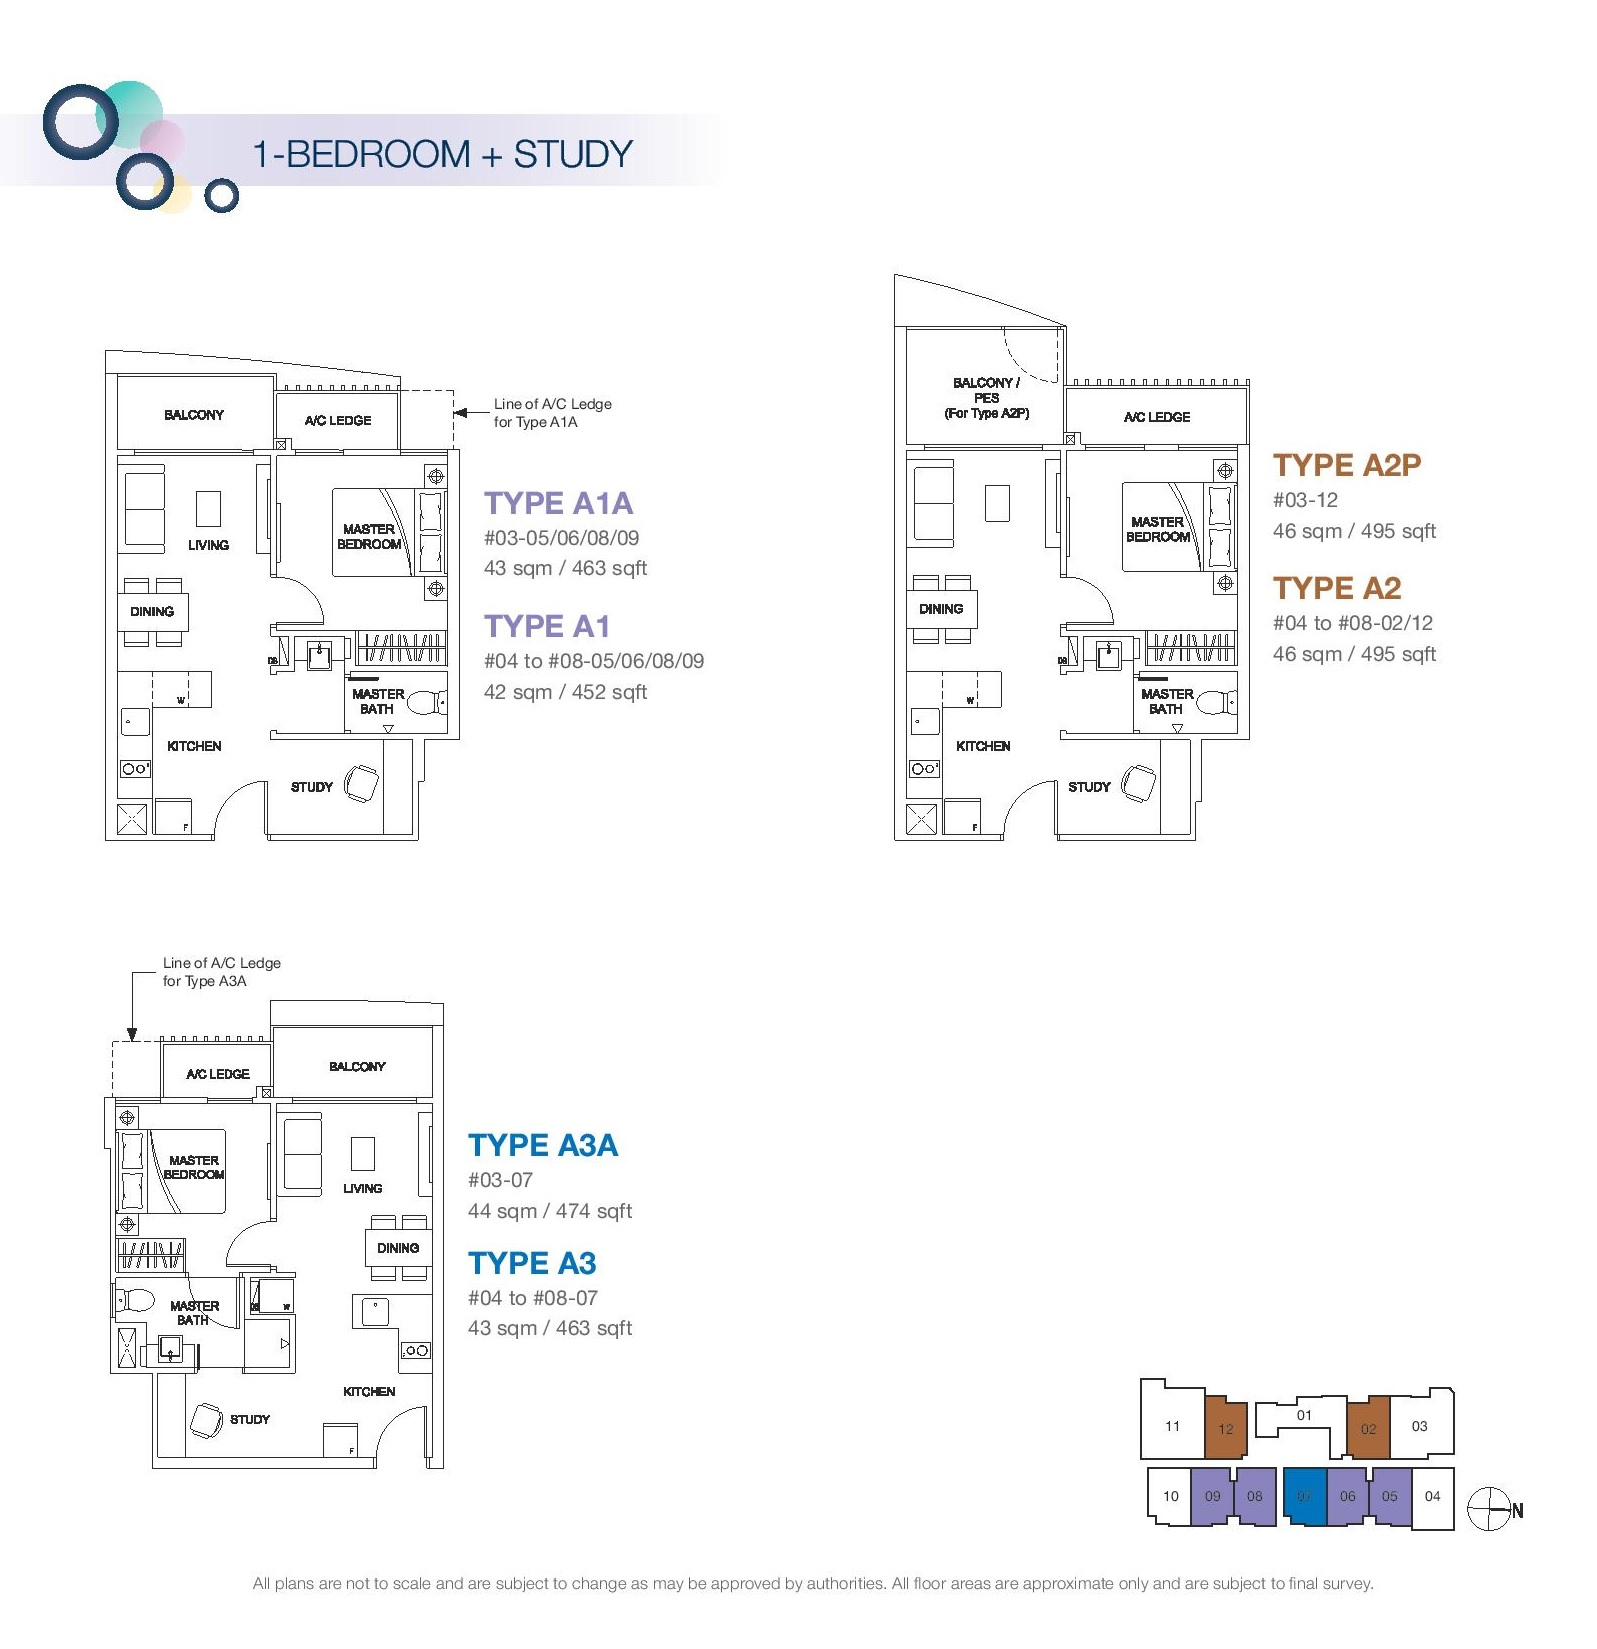 Rezi 3Two 1 Bedroom + Study Floor Plans Type A1A, A1, A2P, A2, A3A, A3